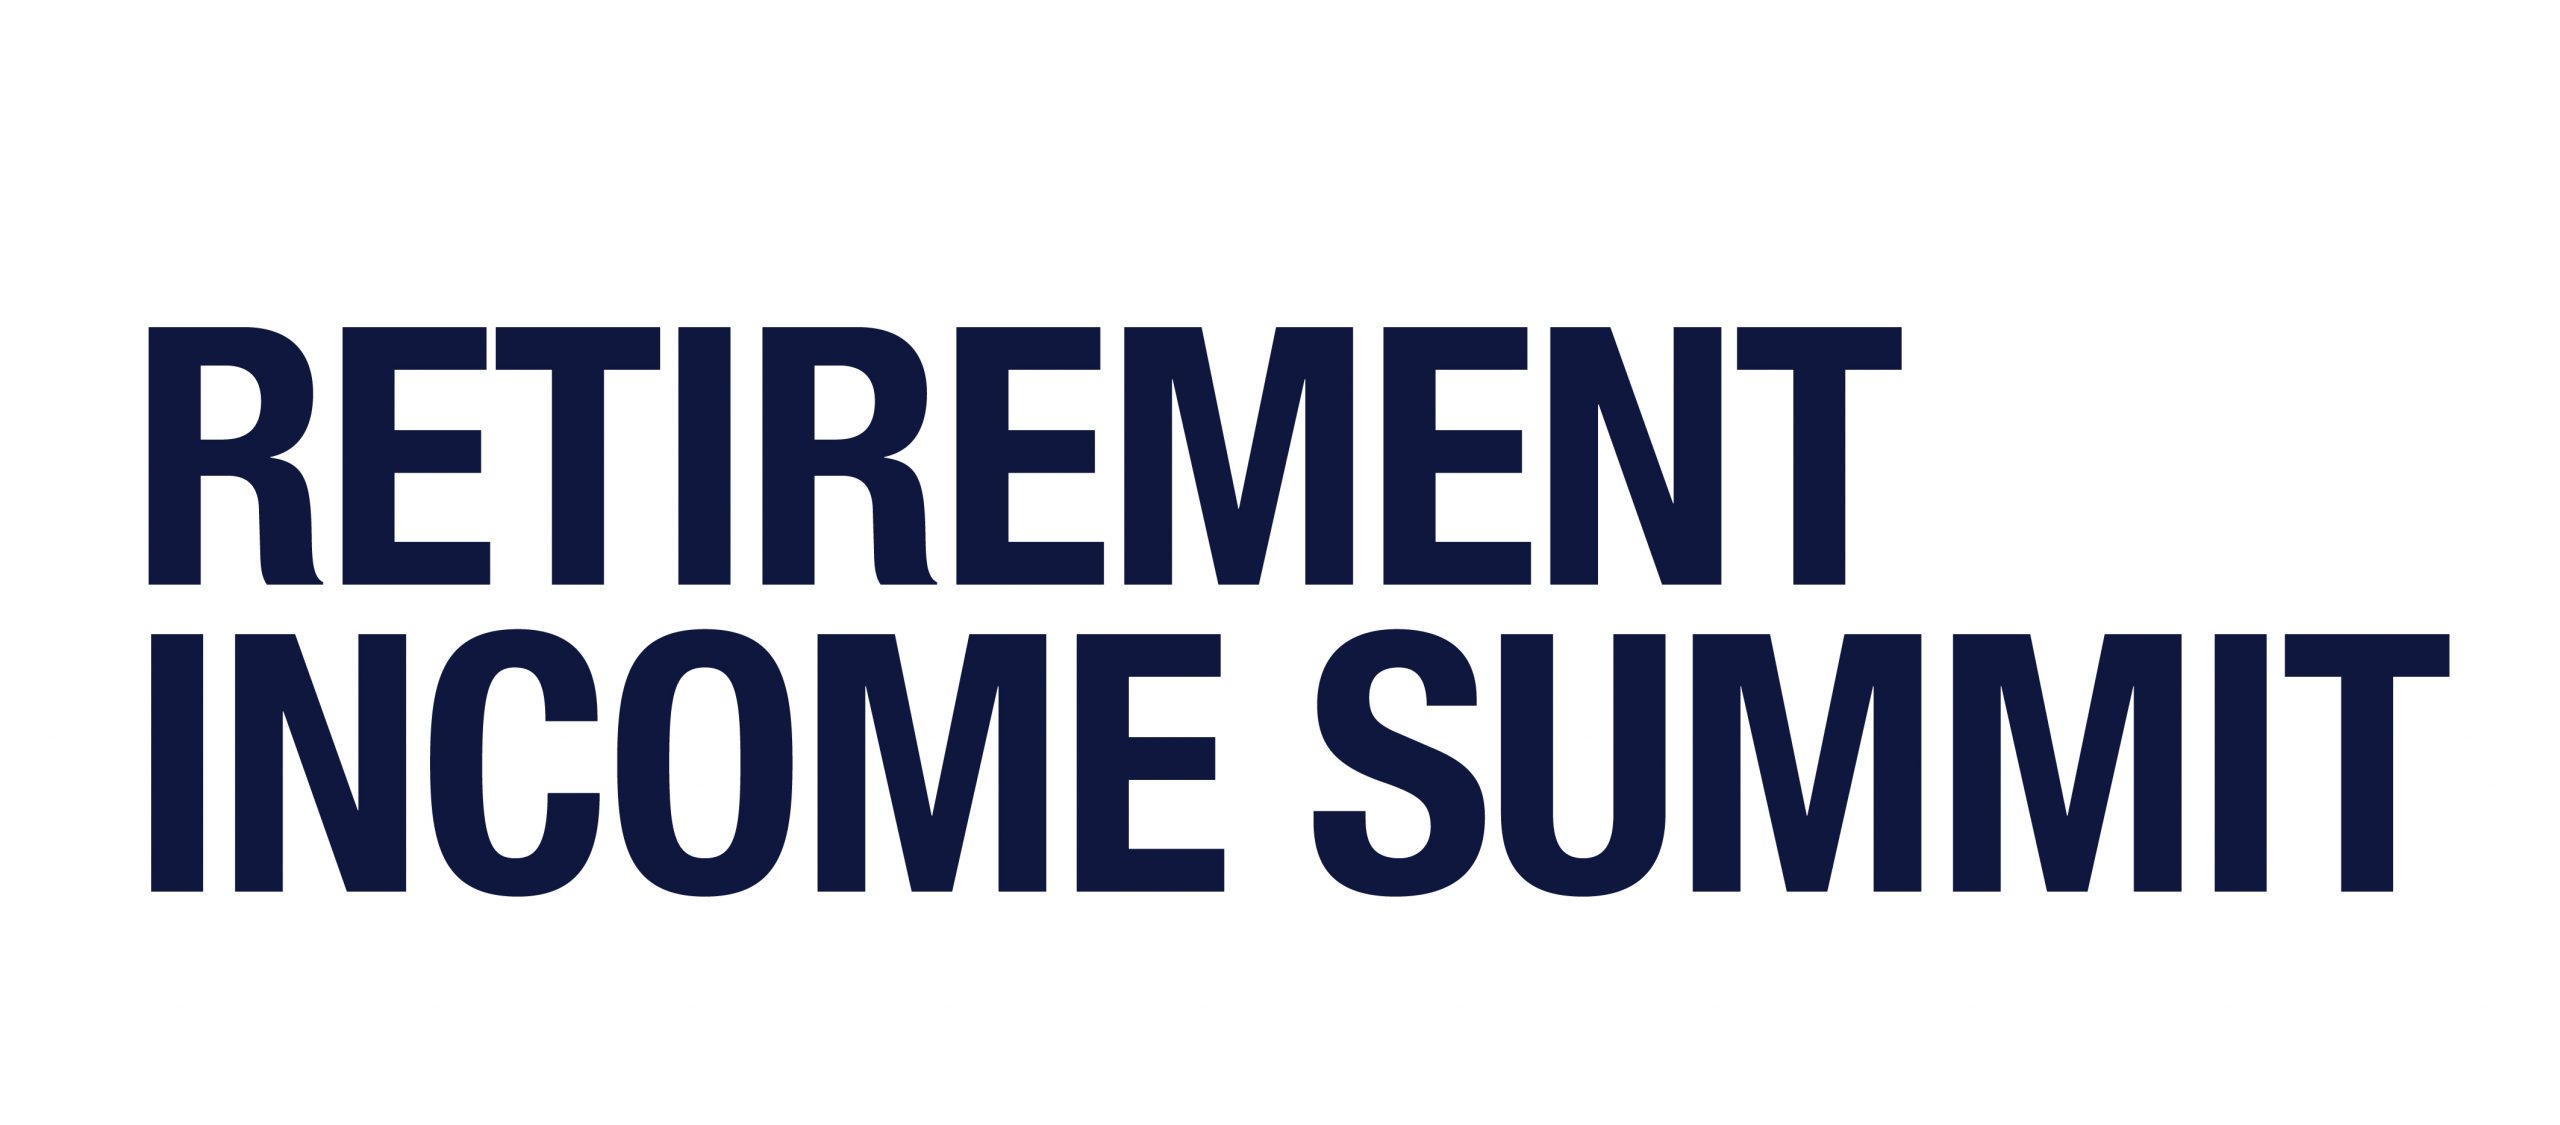 The Retirement Income Summit